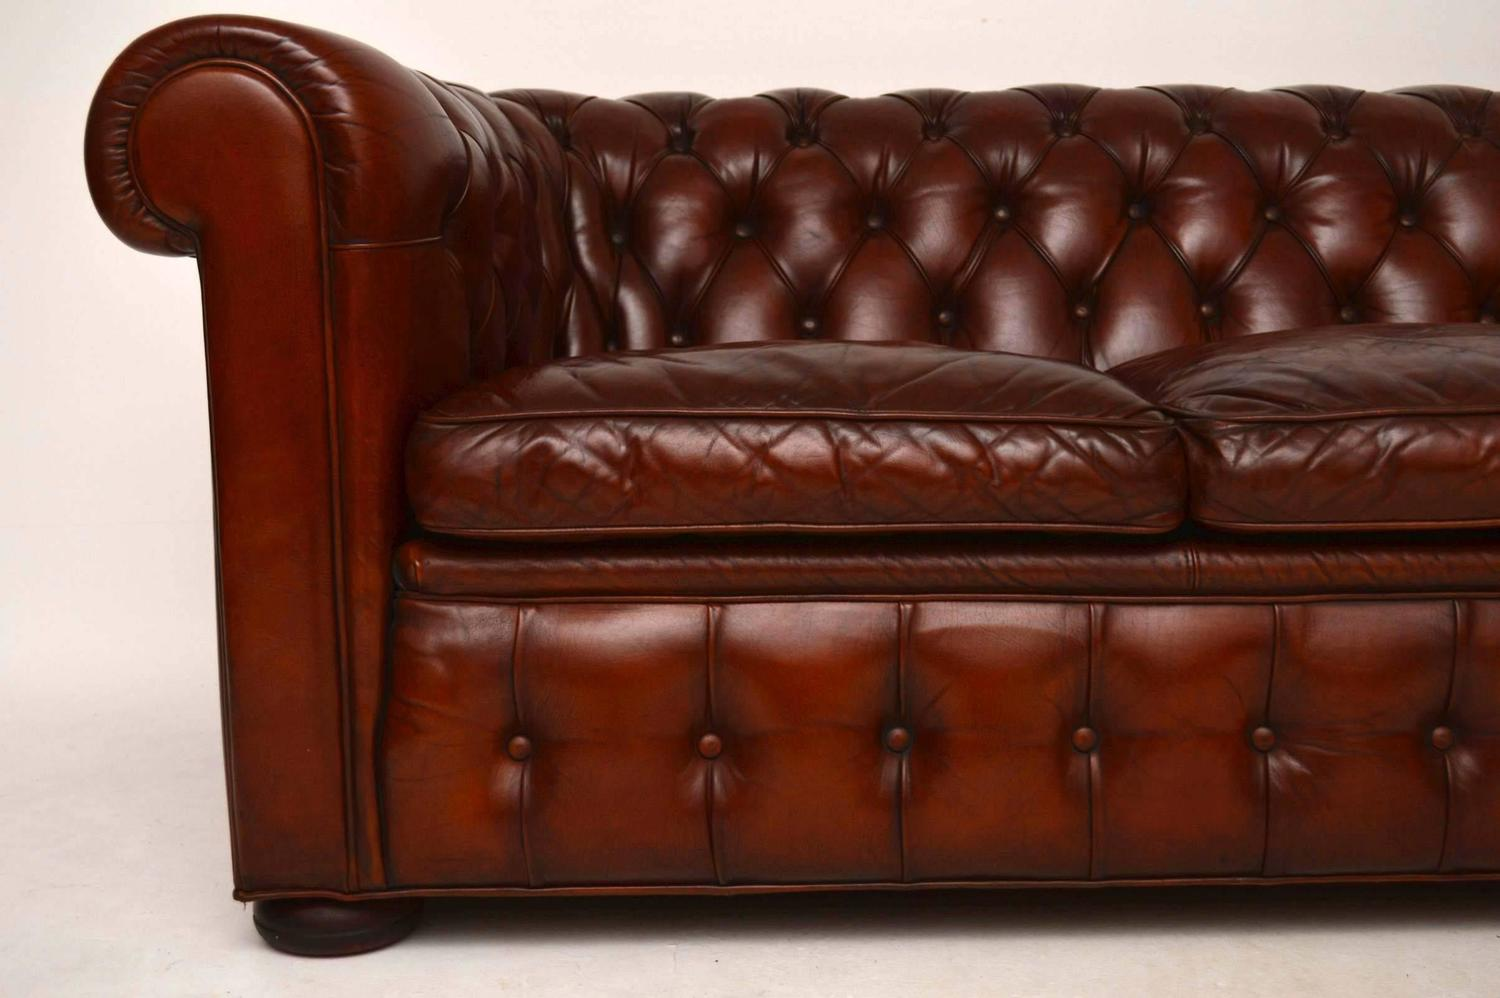 Antique Leather Three Seat Chesterfield Sofa For Sale At 1stdibs